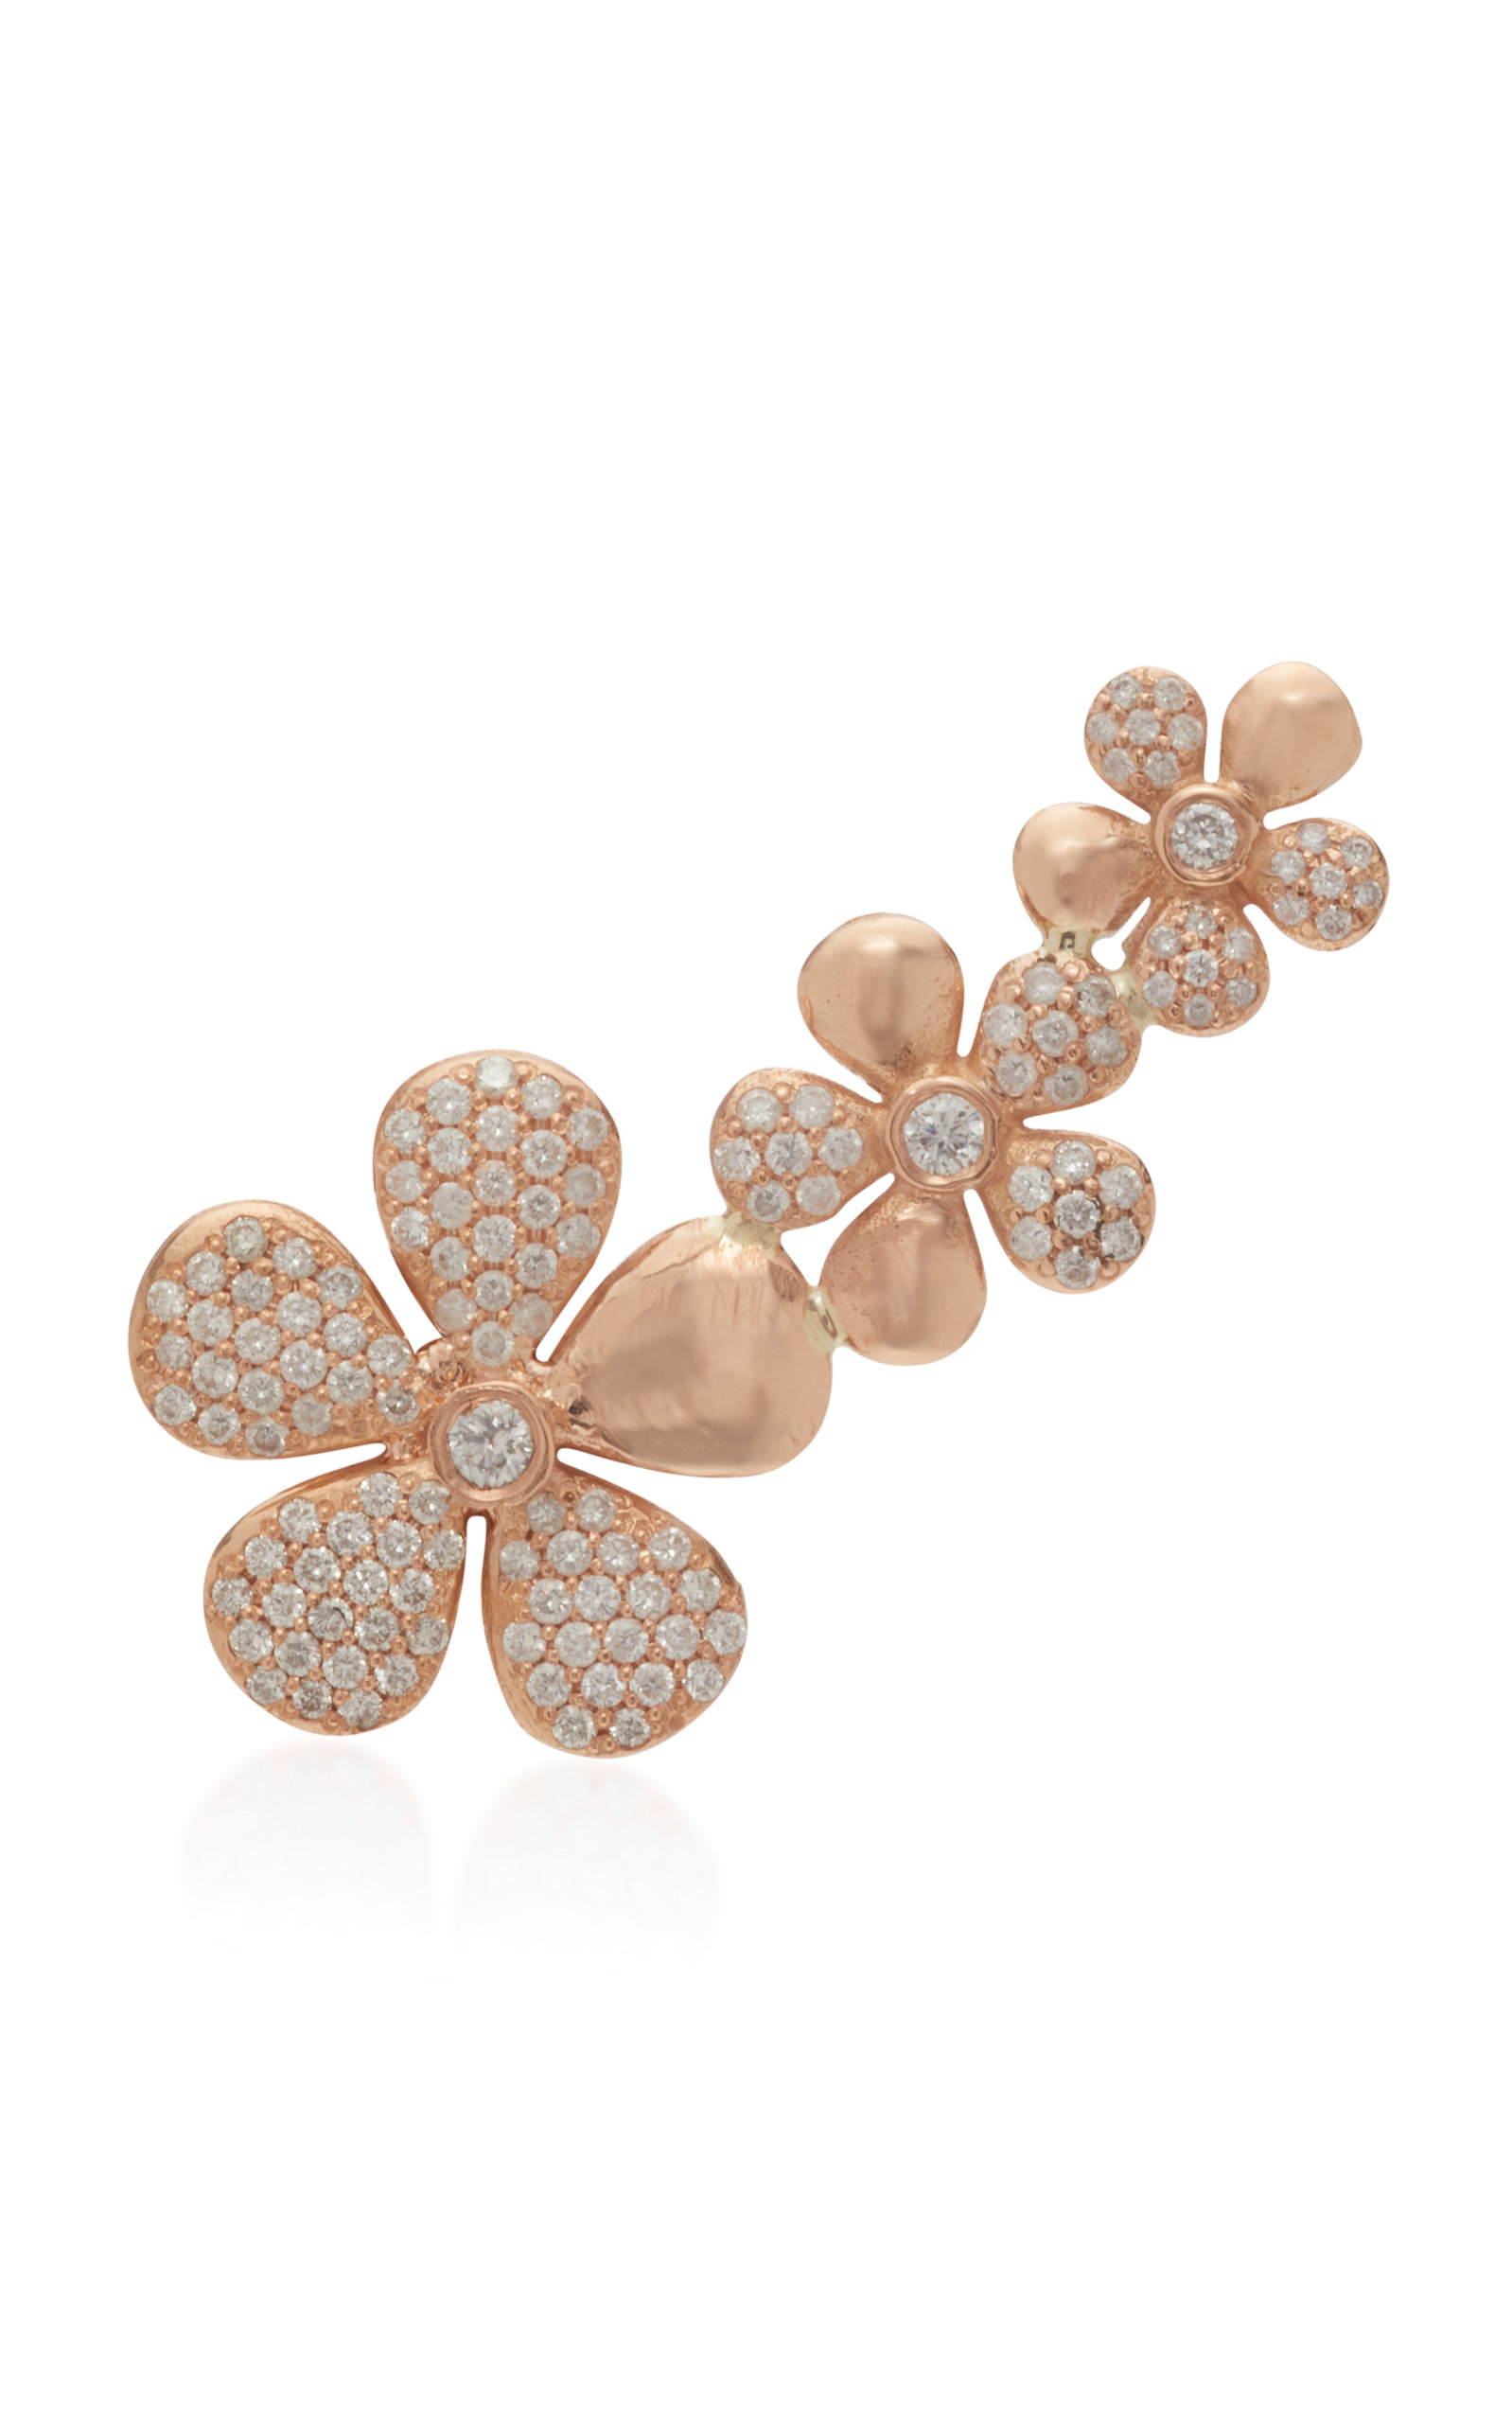 COLETTE JEWELRY Floral 18K Rose Gold And Diamond Ear Climber in Pink